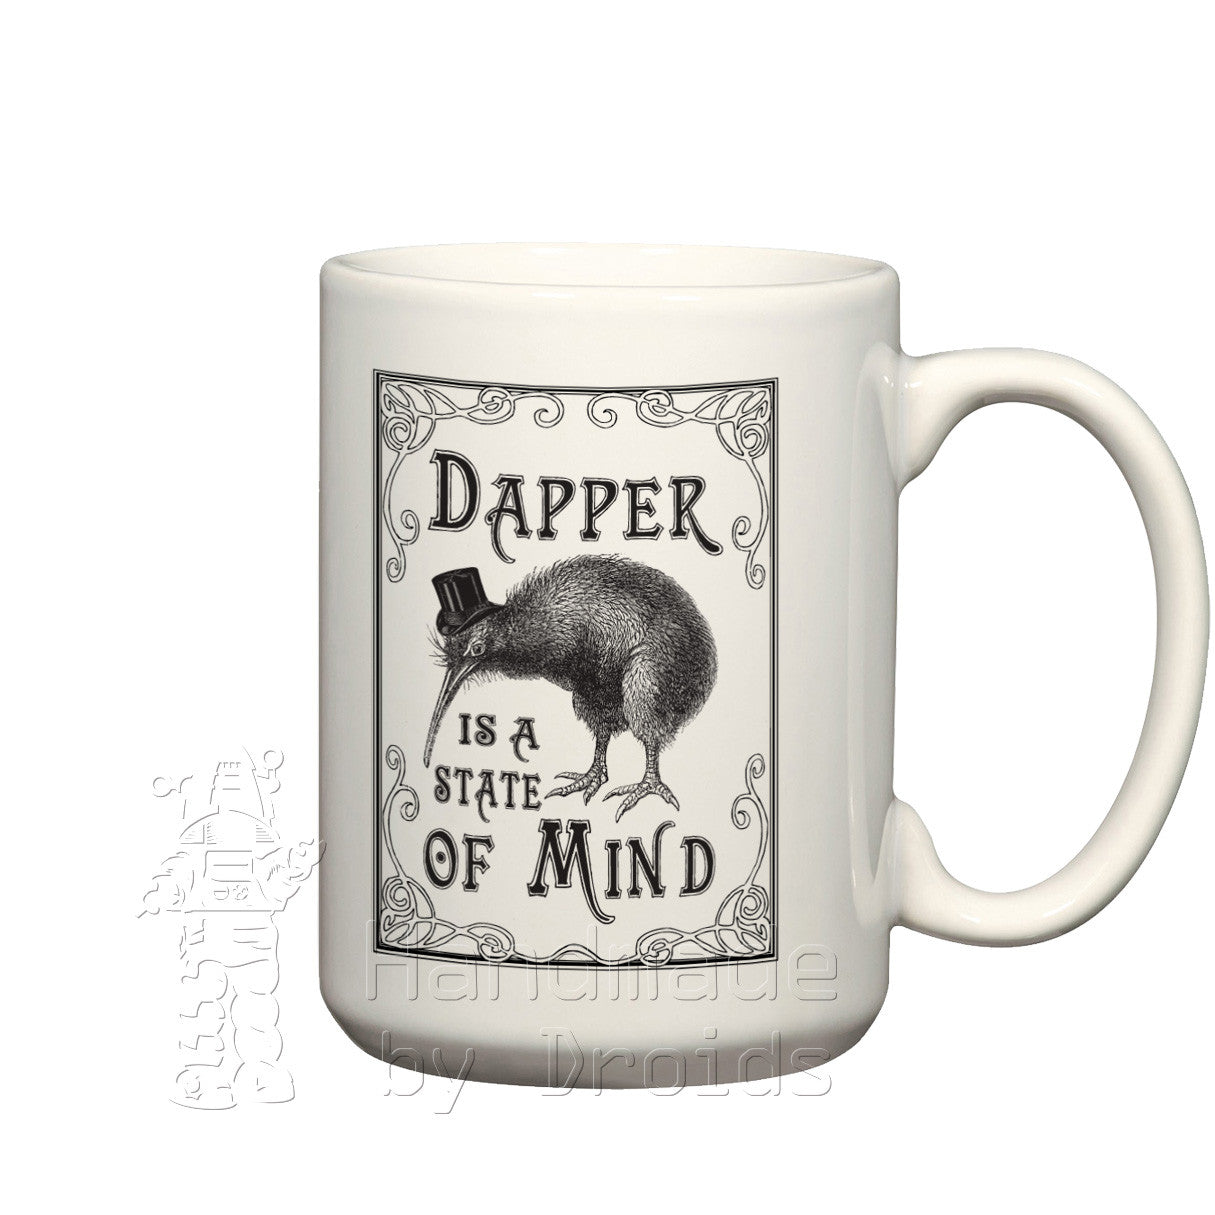 Dapper is a State of Mind Kiwi coffee cup